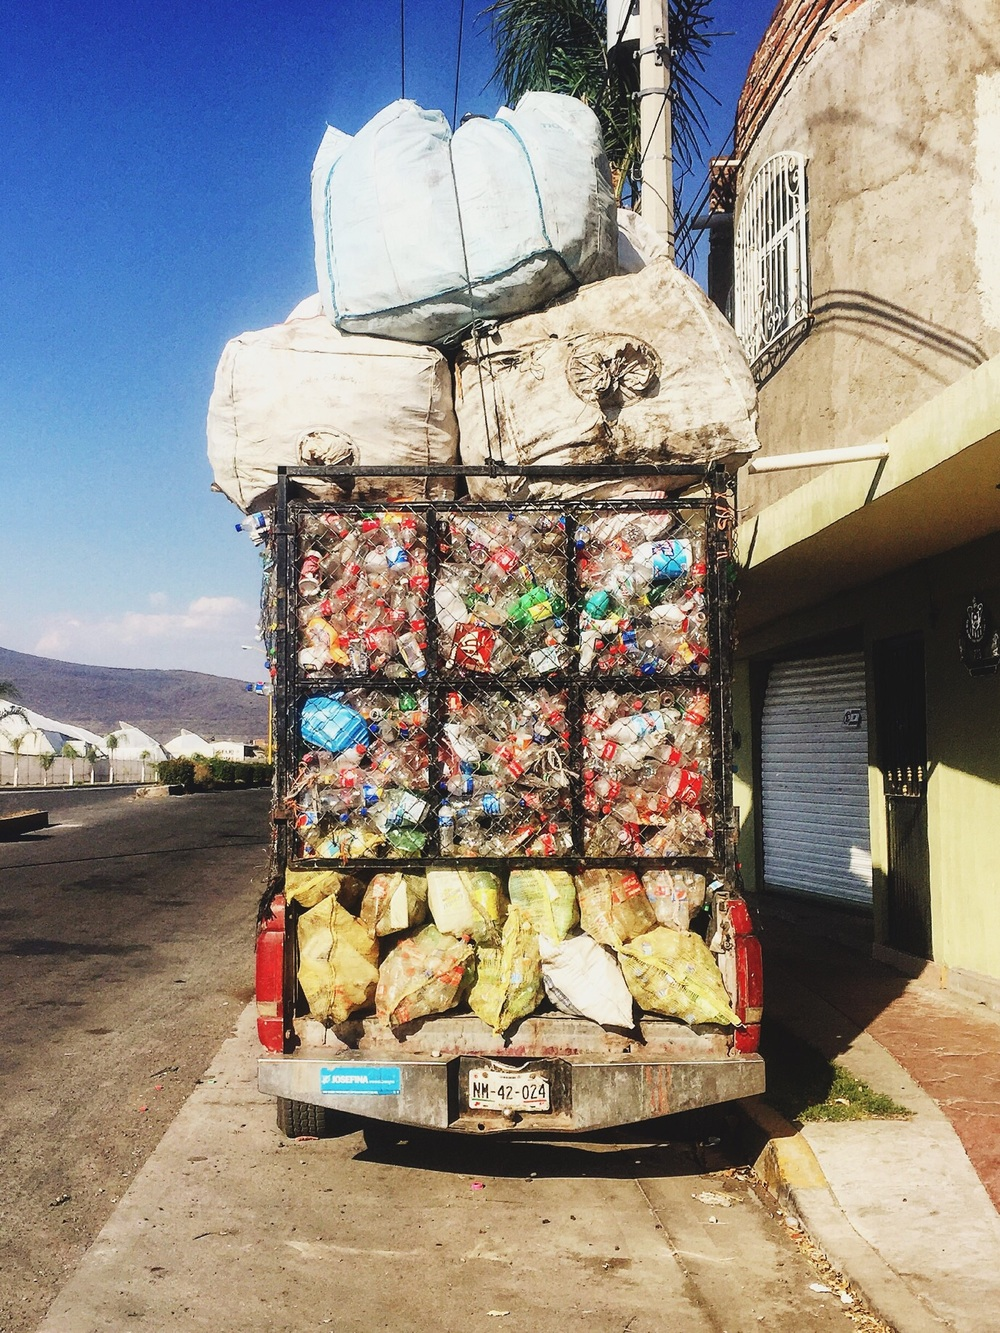 Some serious recycling in Tanhuato de Guerrero